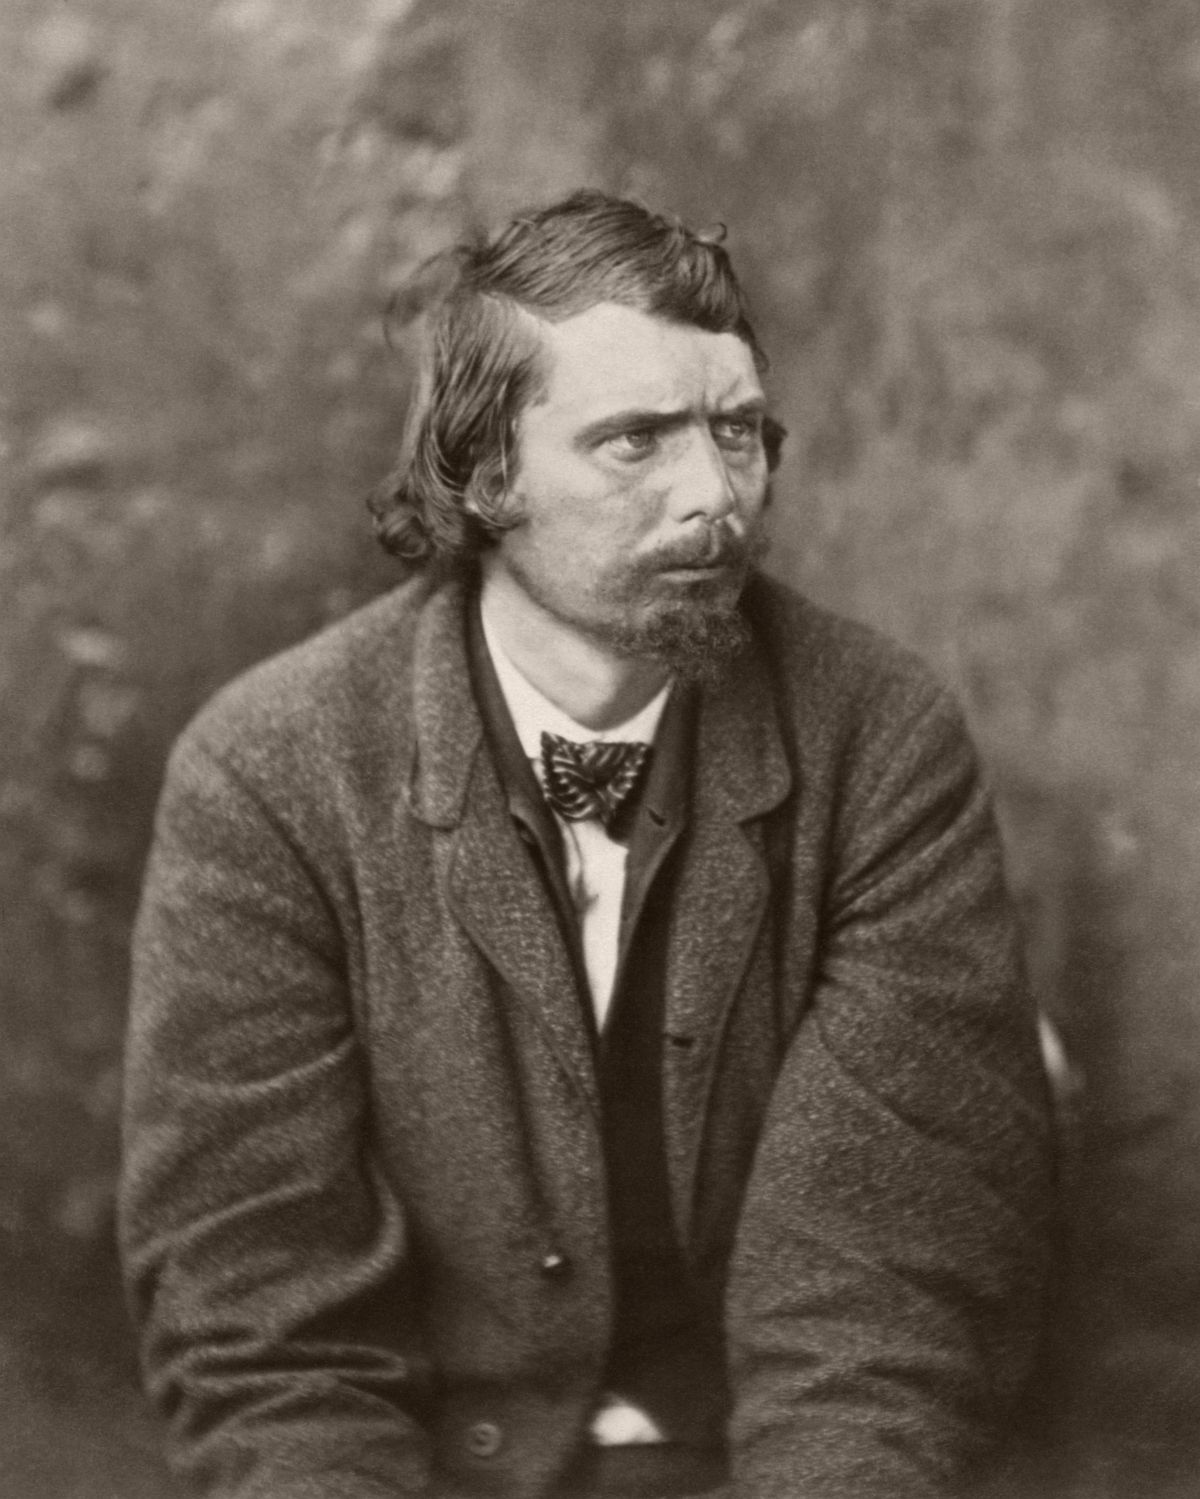 George Atzerodt, conspirator to assassination, after arrest, 1865.